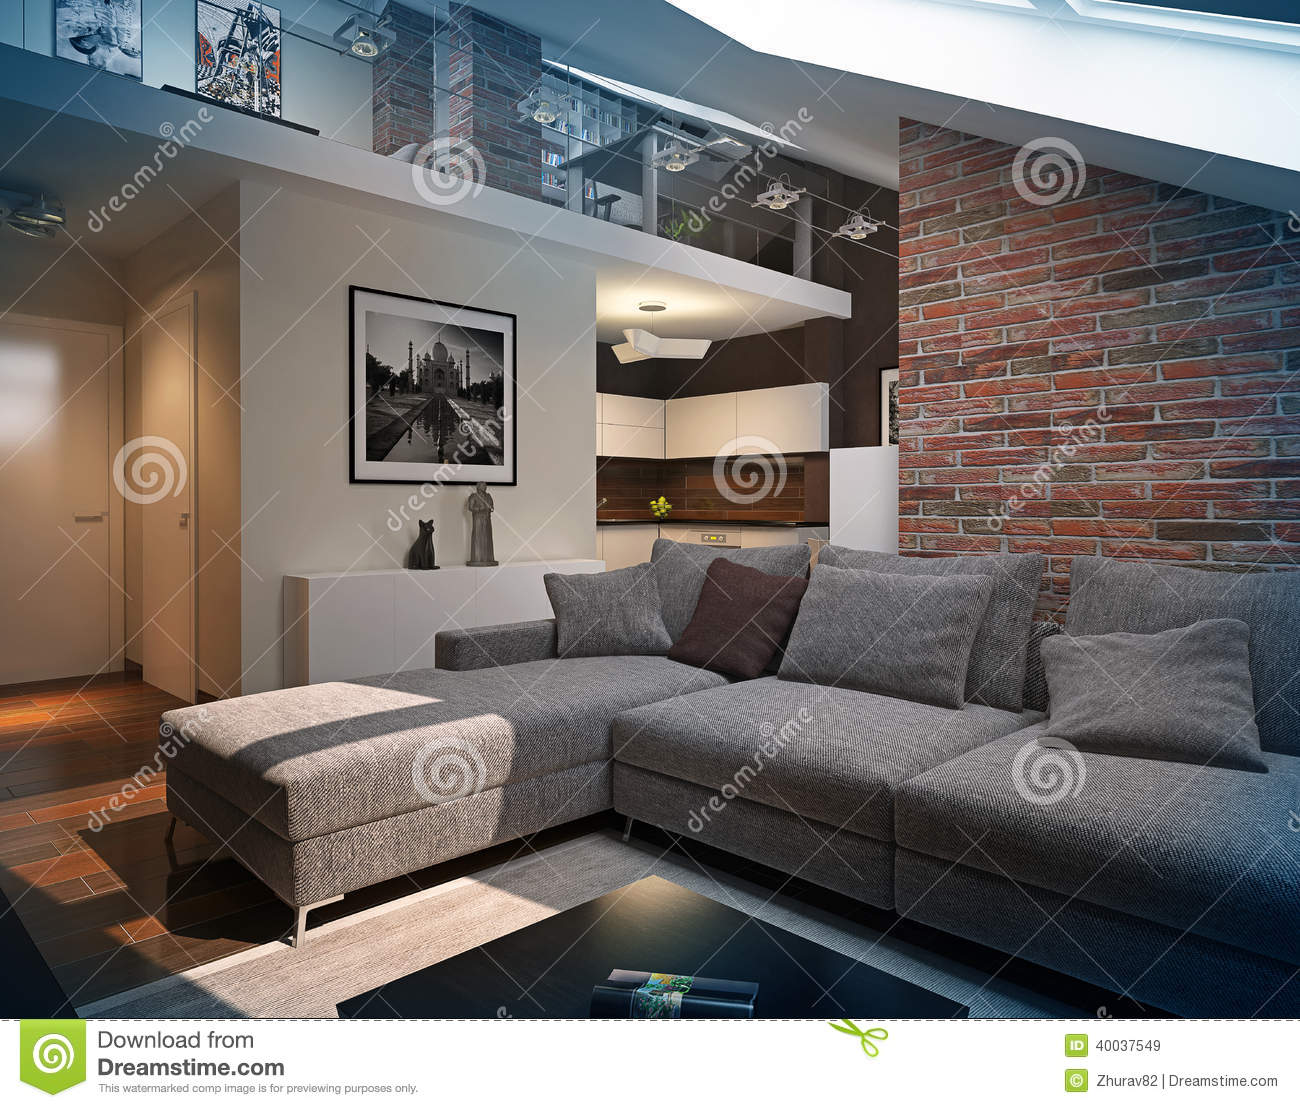 curtains for living room with grey sofa statues modern loft interior. stock illustration ...